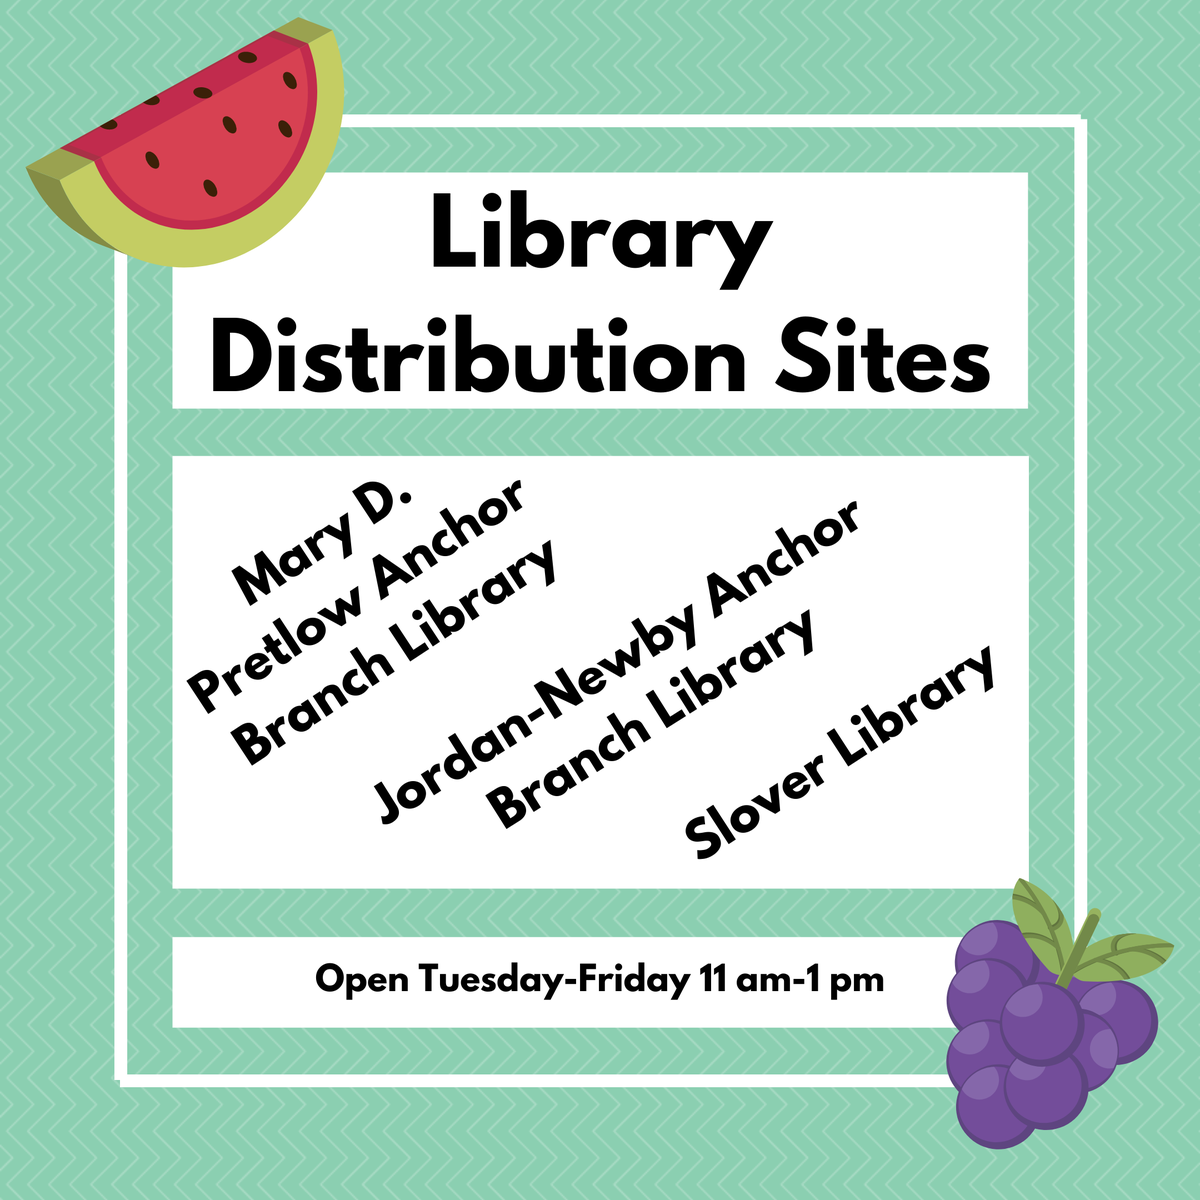 NEW MEAL SITES OPEN STARTING TOMORROW!  Our friends at @NorfPublicLib have partnered with us at @SloverLibrary, Pretlow Library, and Jordan-Newby Library to distribute #grabandgo meals Tuesday through Friday from 11-1. Meals include breakfast &lunch. #InThisTogether #NoKidHungry https://t.co/XThawPBlEp